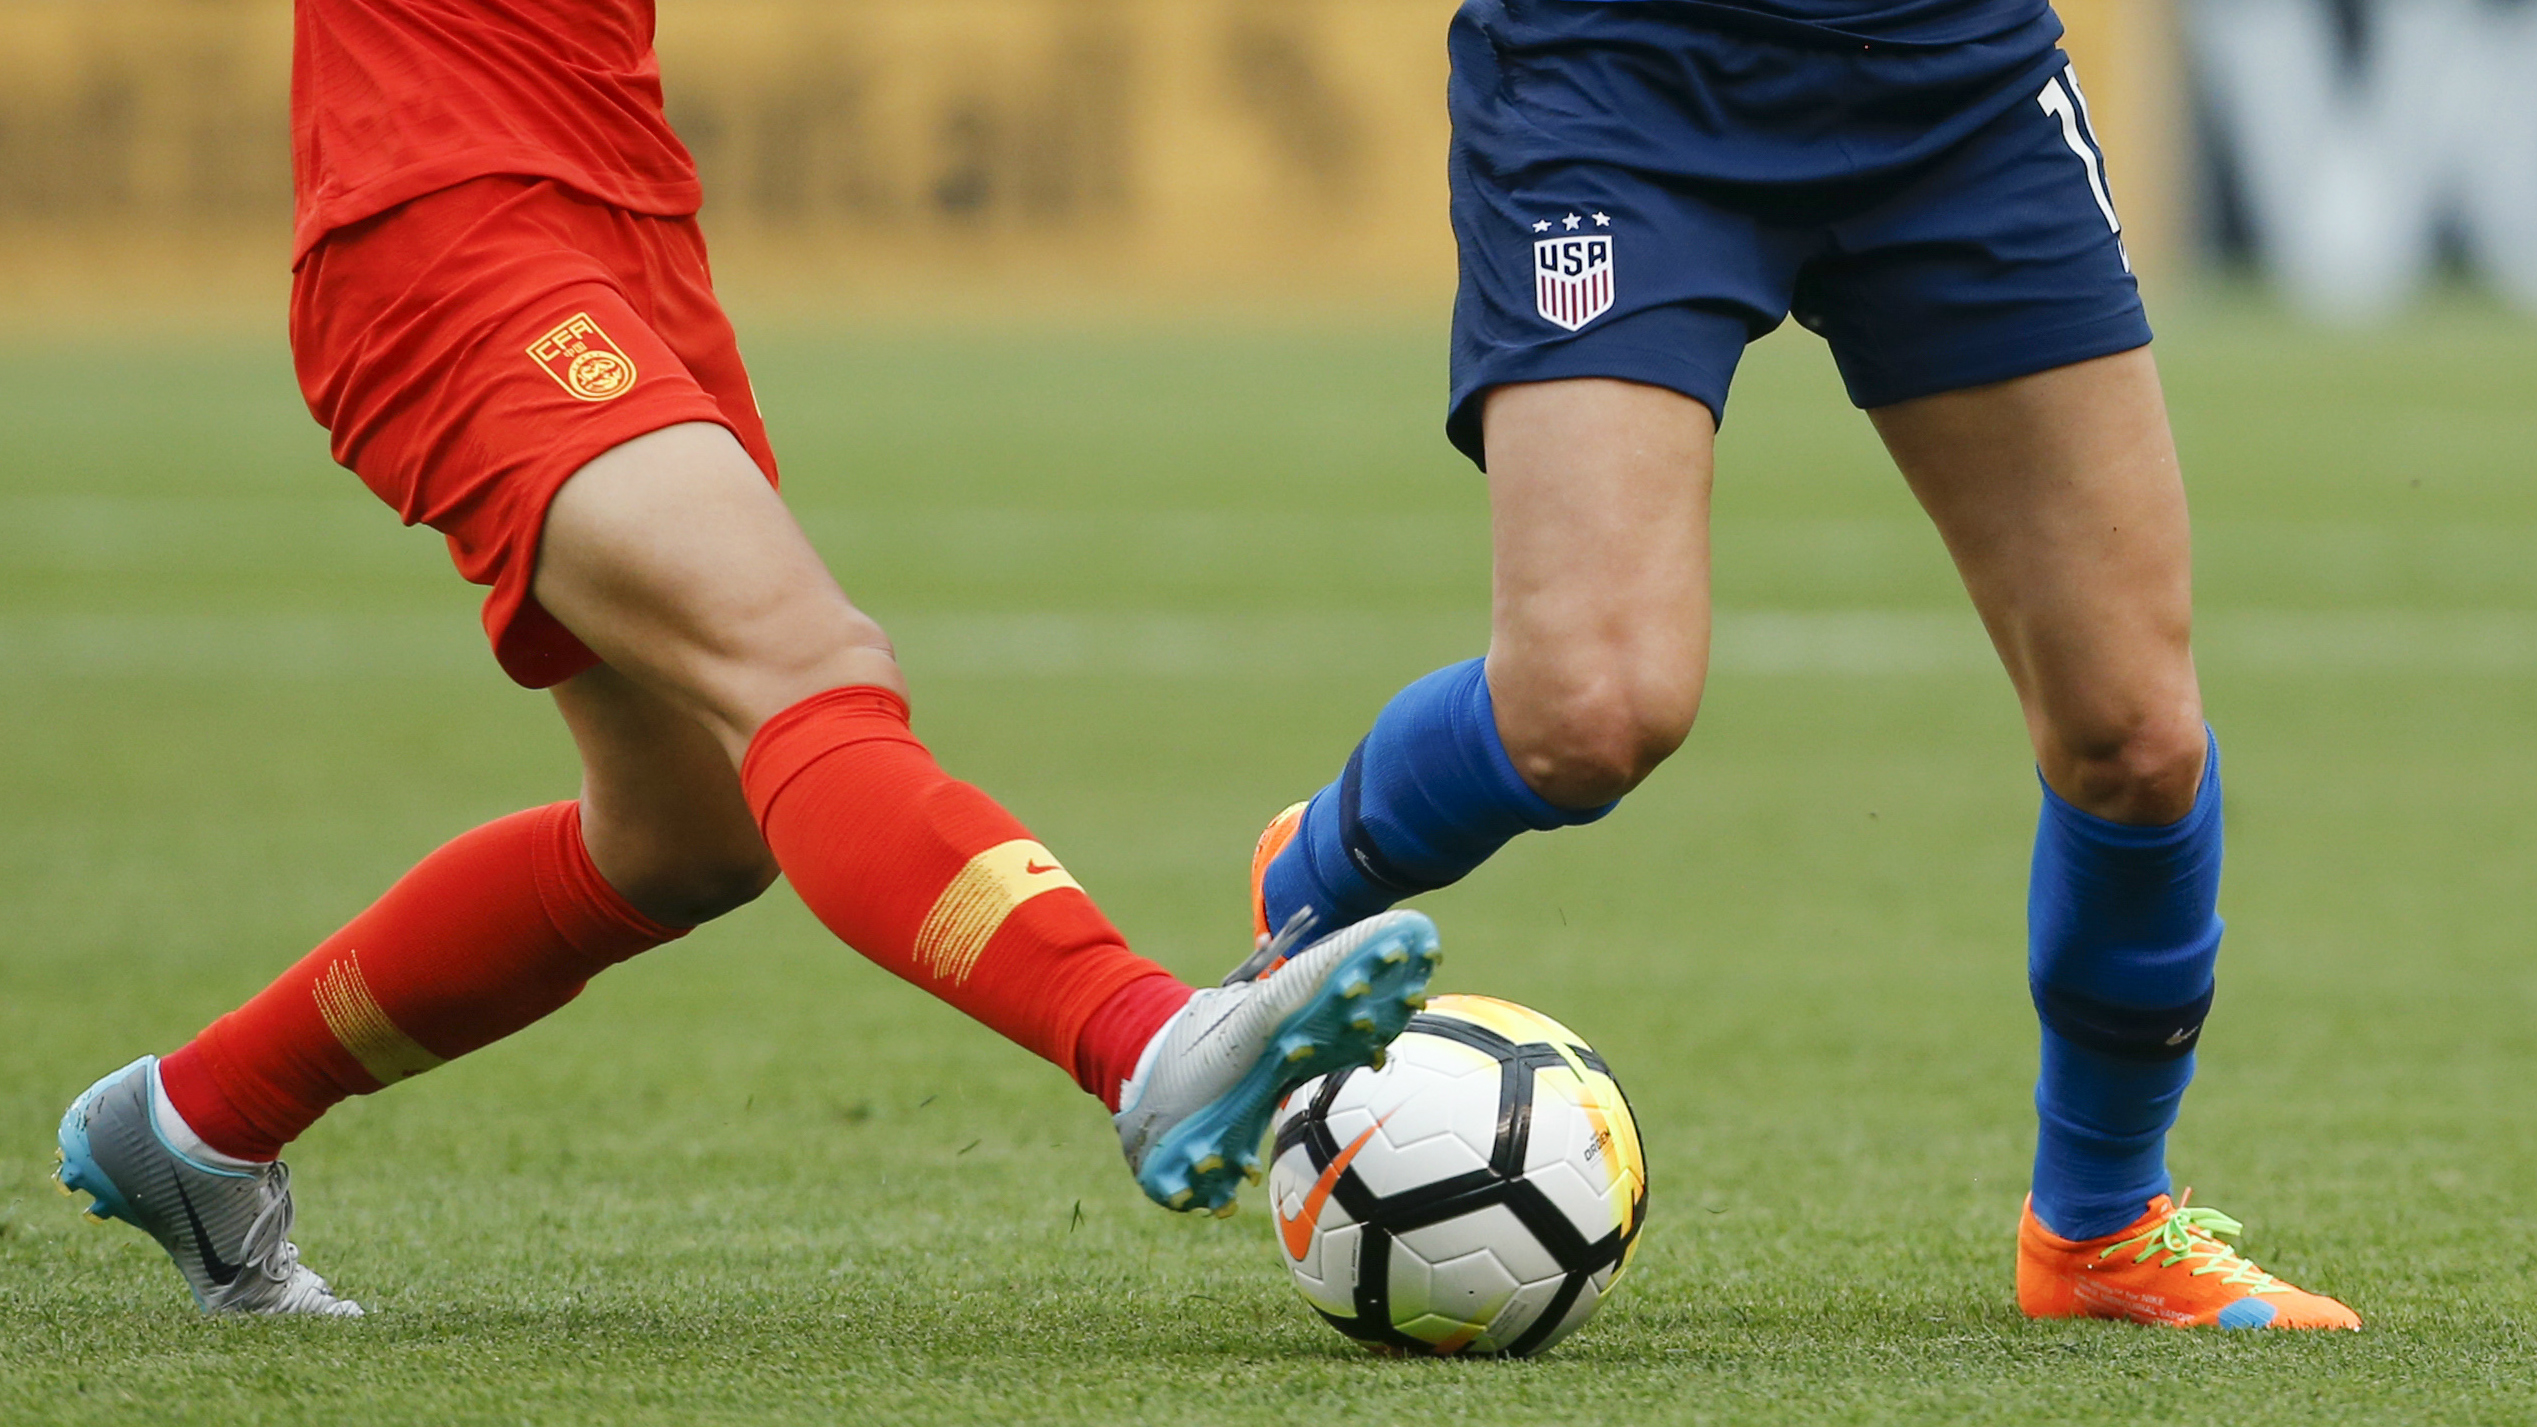 Chinese and US soccer players fight for a soccer ball.